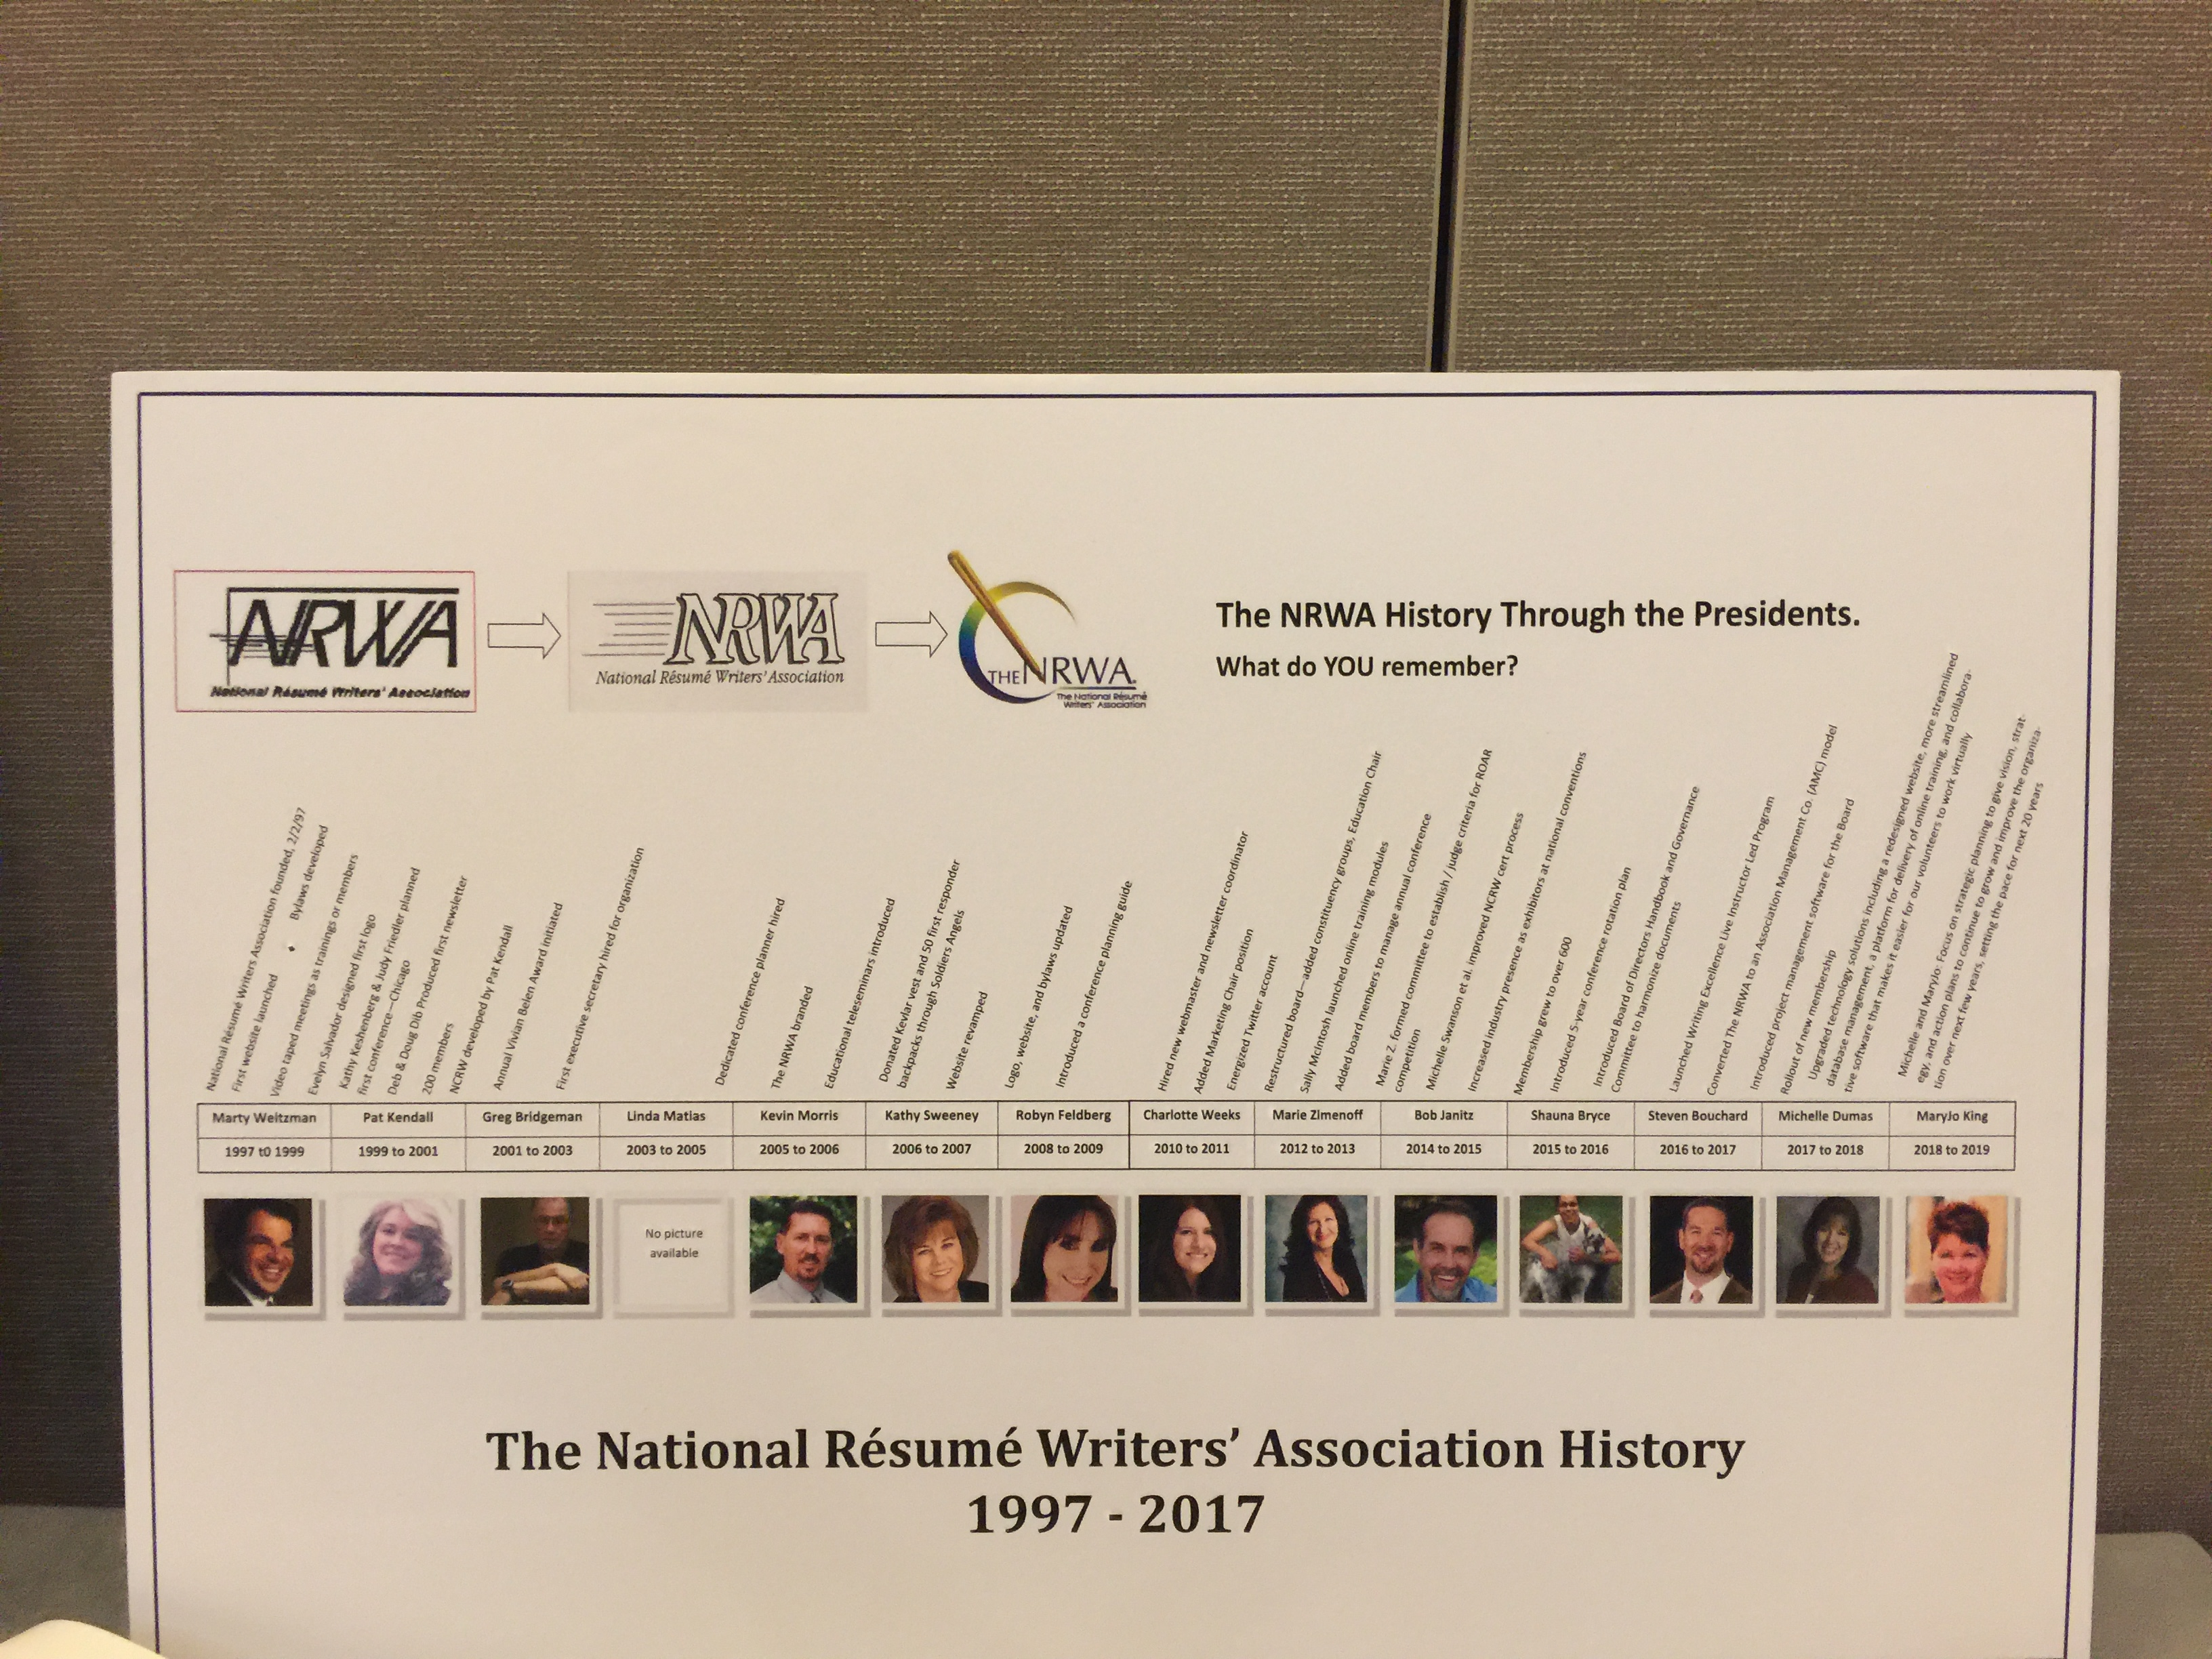 celebrating 20 years of resume writing excellence - National Resume Writers Association